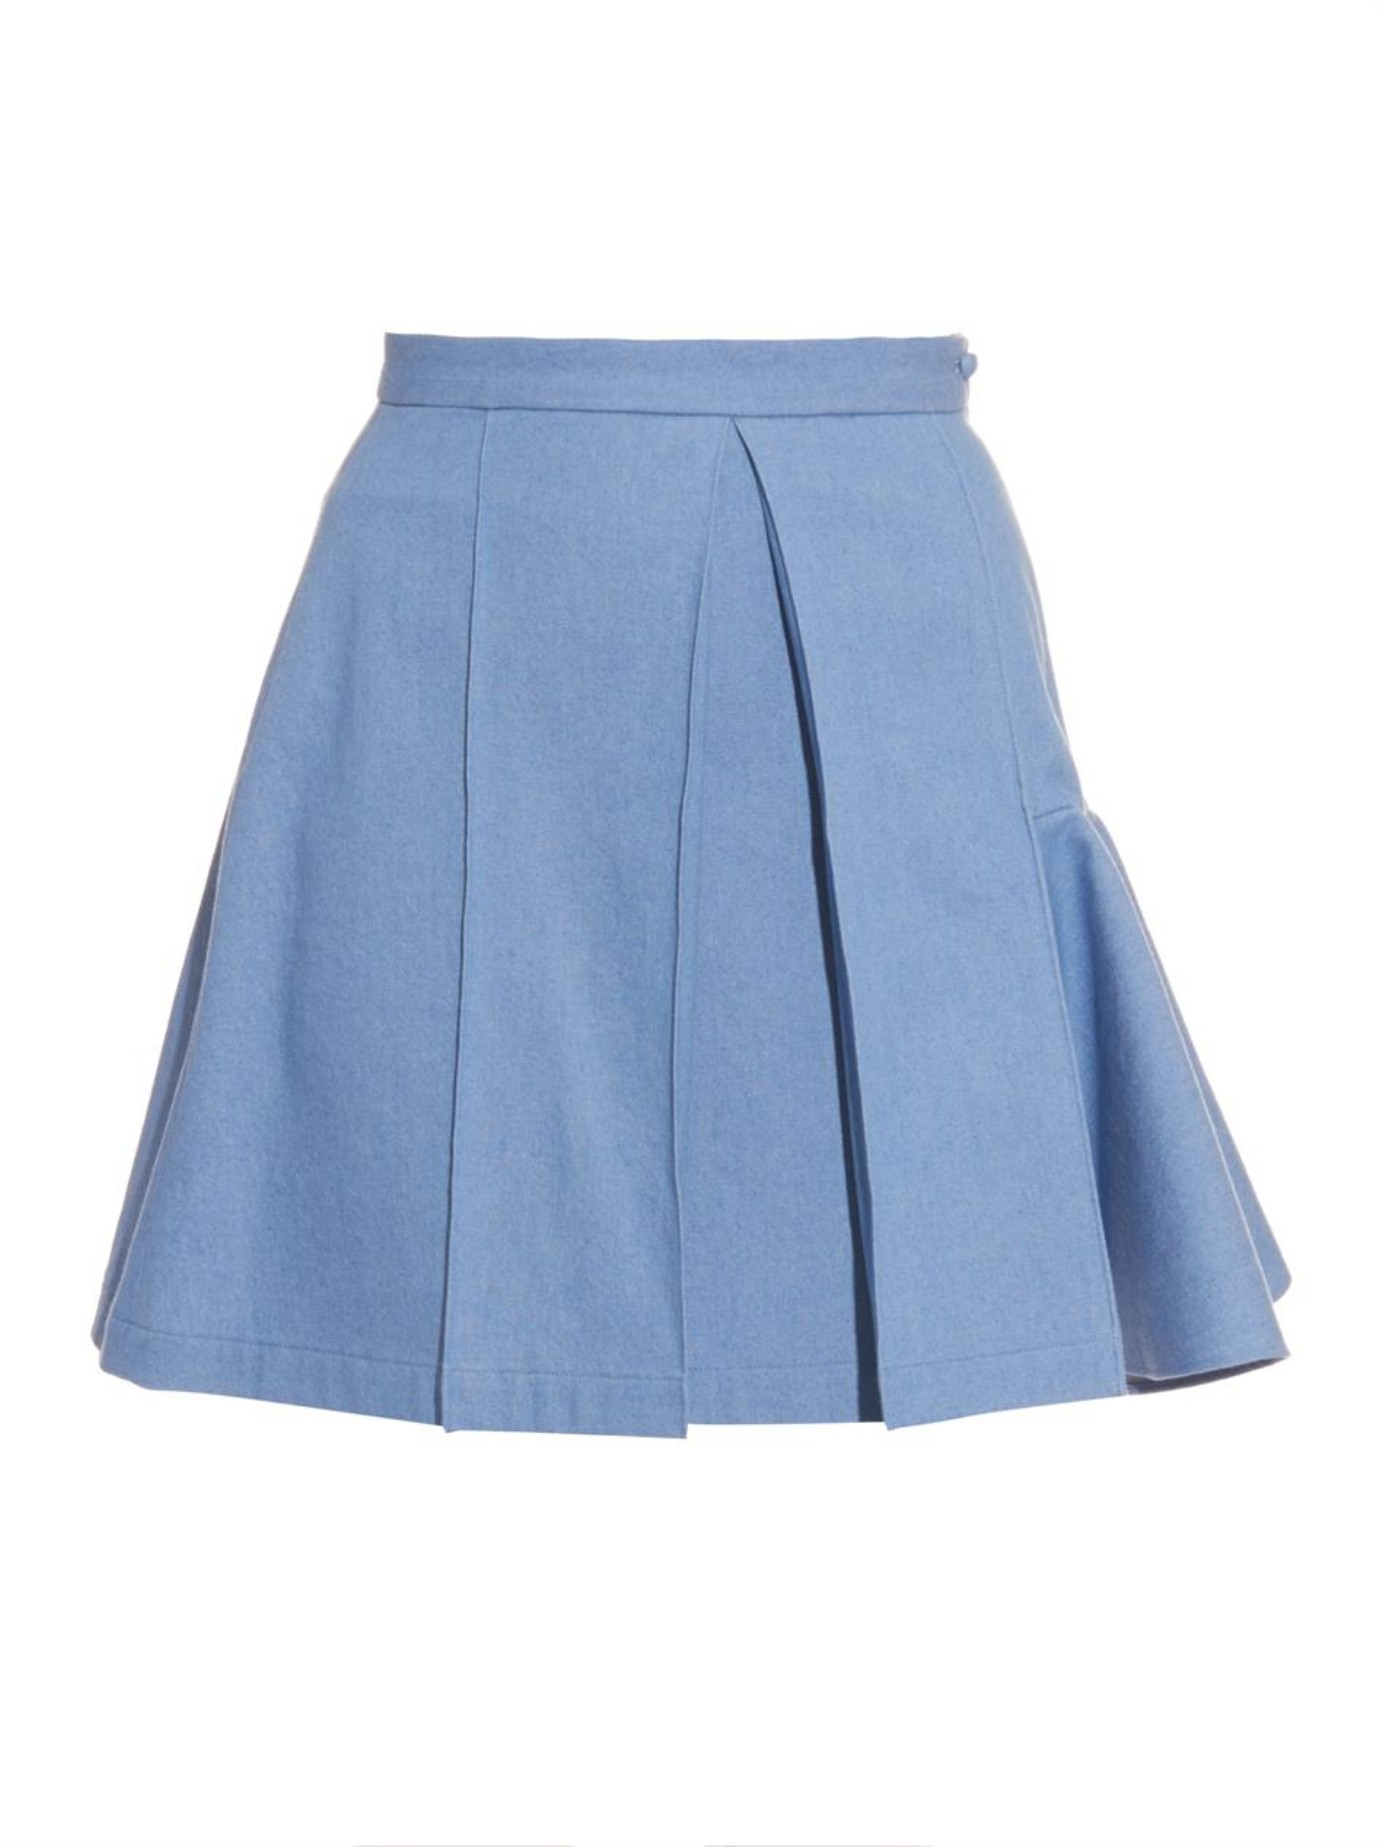 julien david pleated lightweight denim skirt in blue lyst